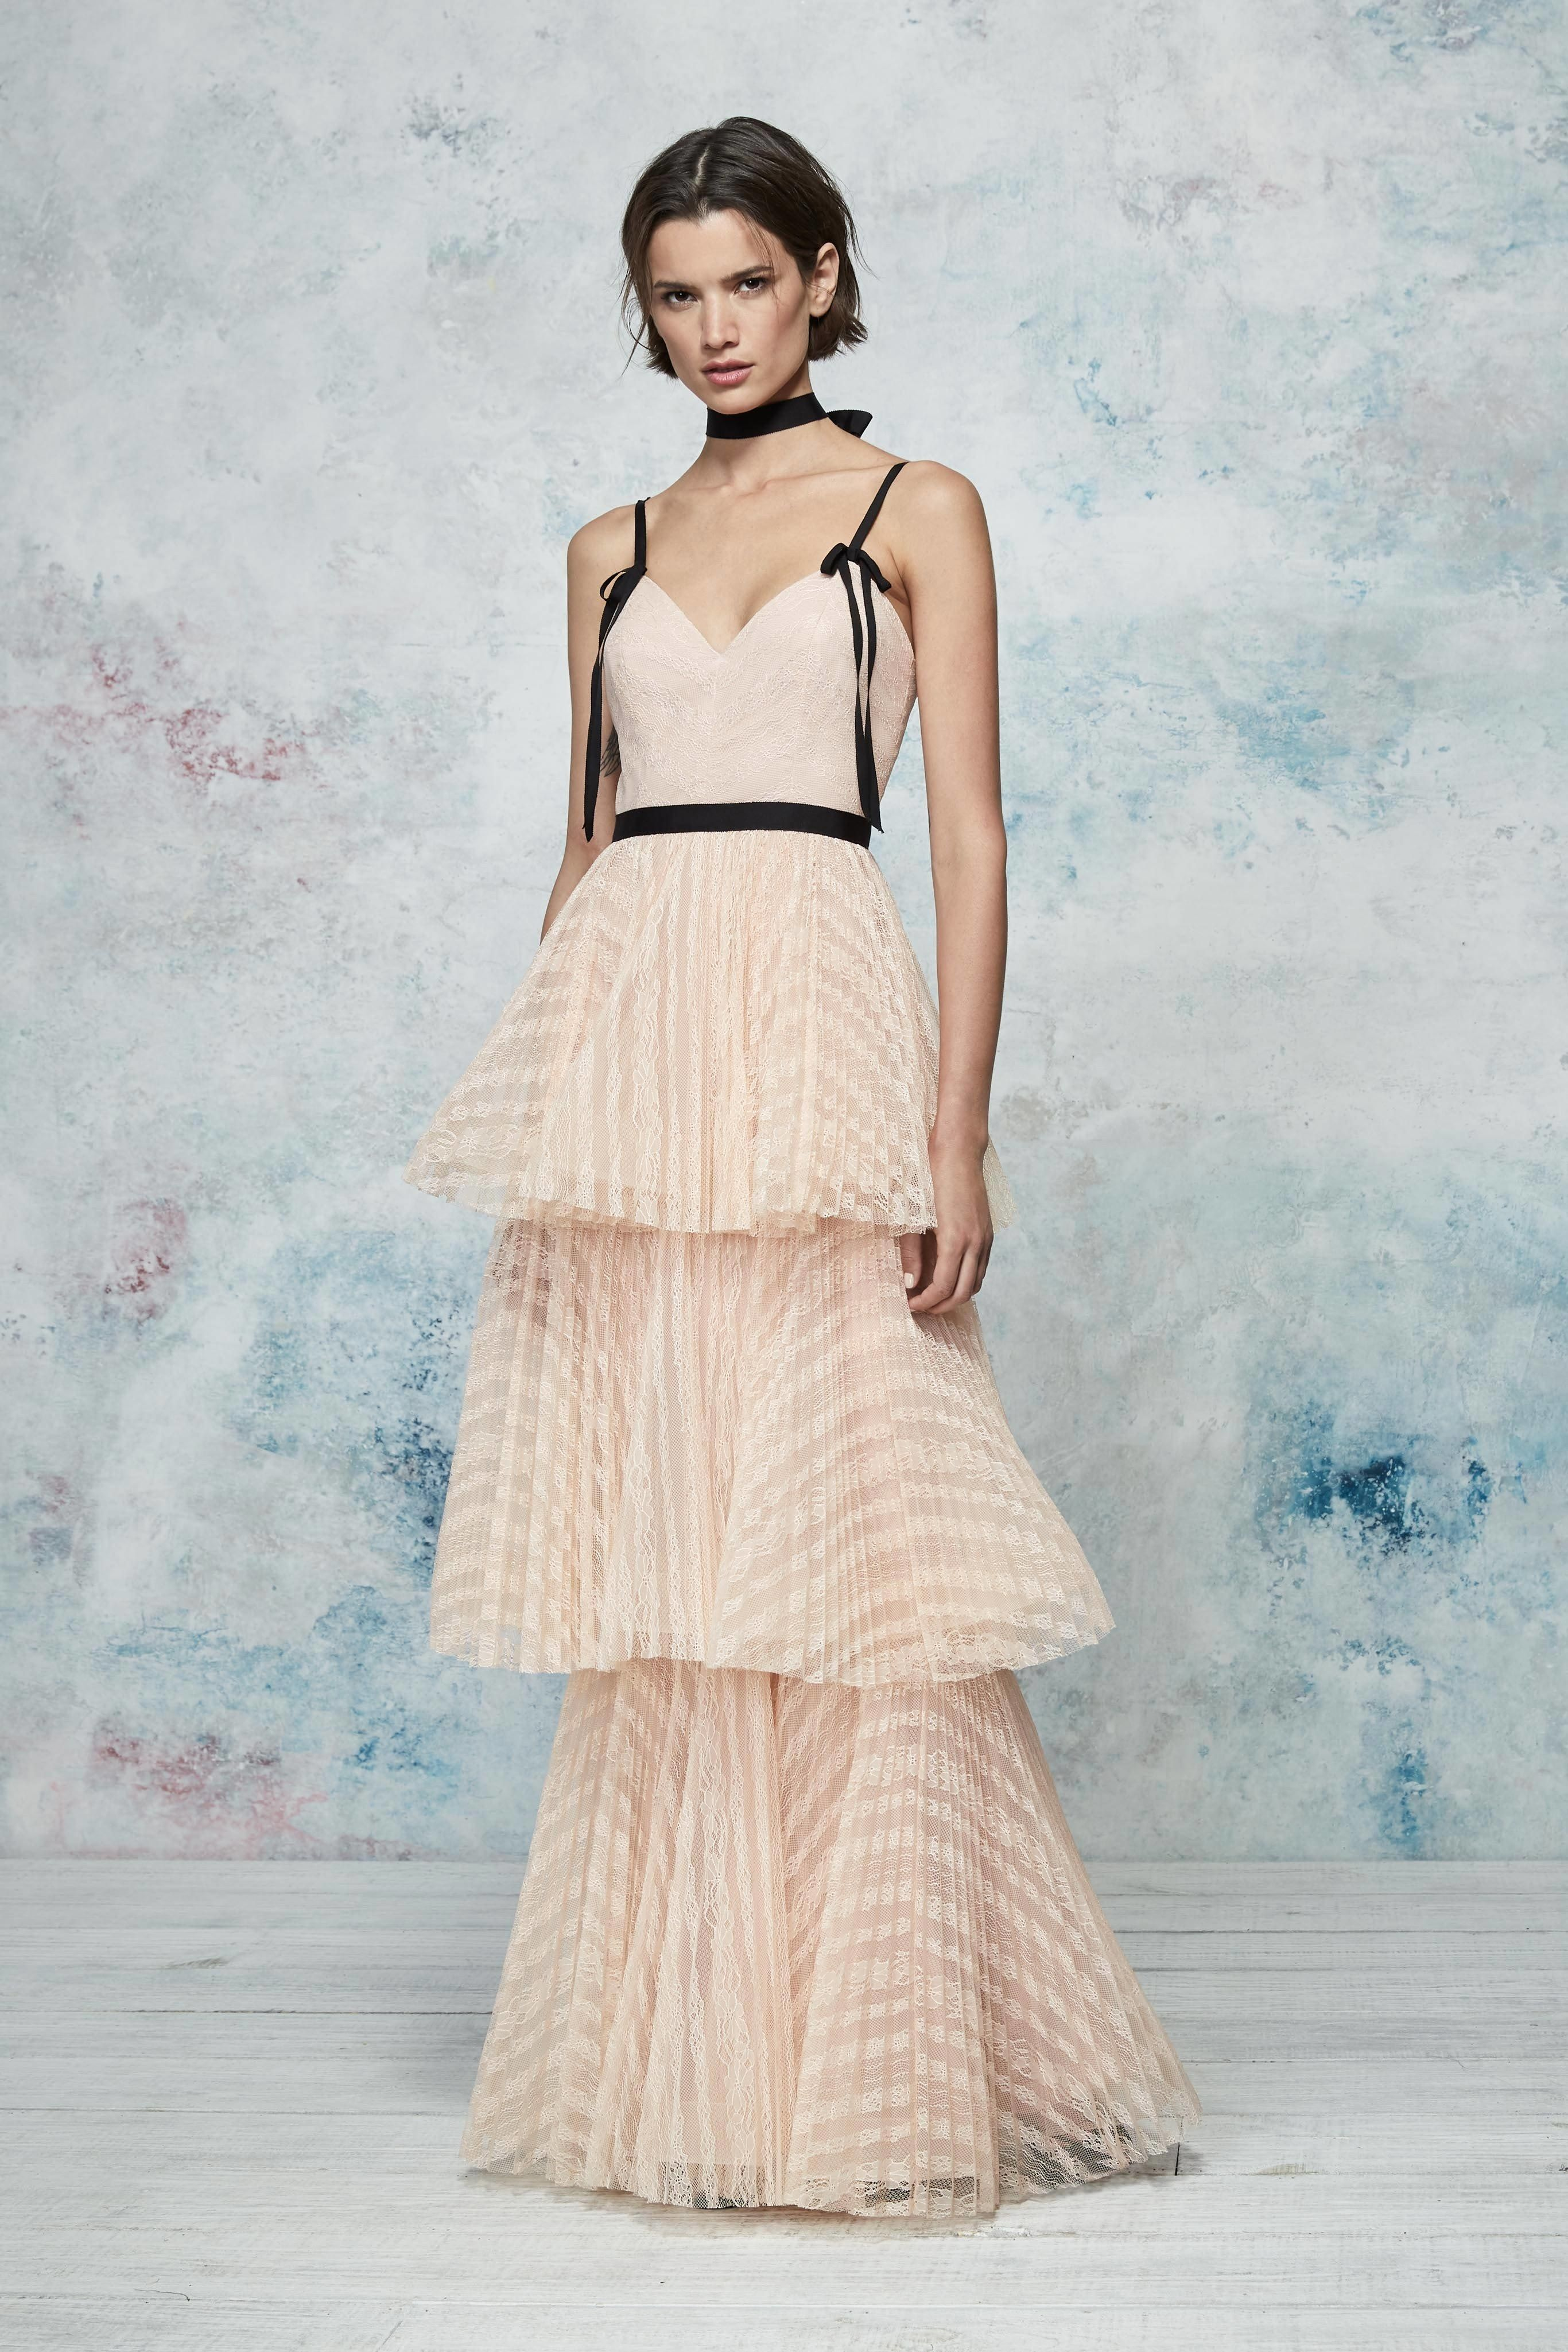 ebef3071 Marchesa Notte Resort 2019 New York Collection -  Vogue#purveyoroffinefabrics #rexfabrics #passionforfabrics